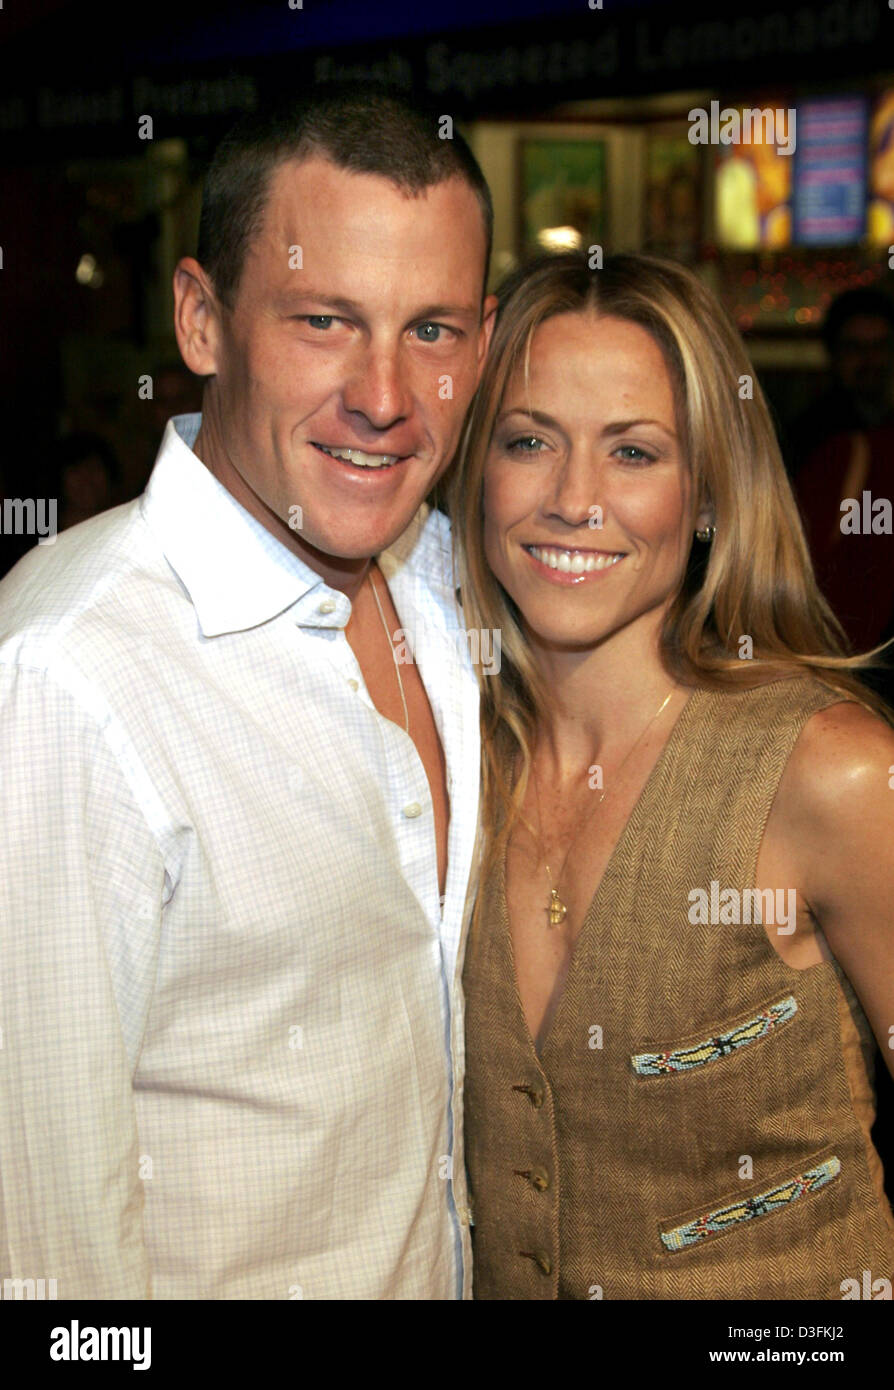 Lance Armstrong dating historie